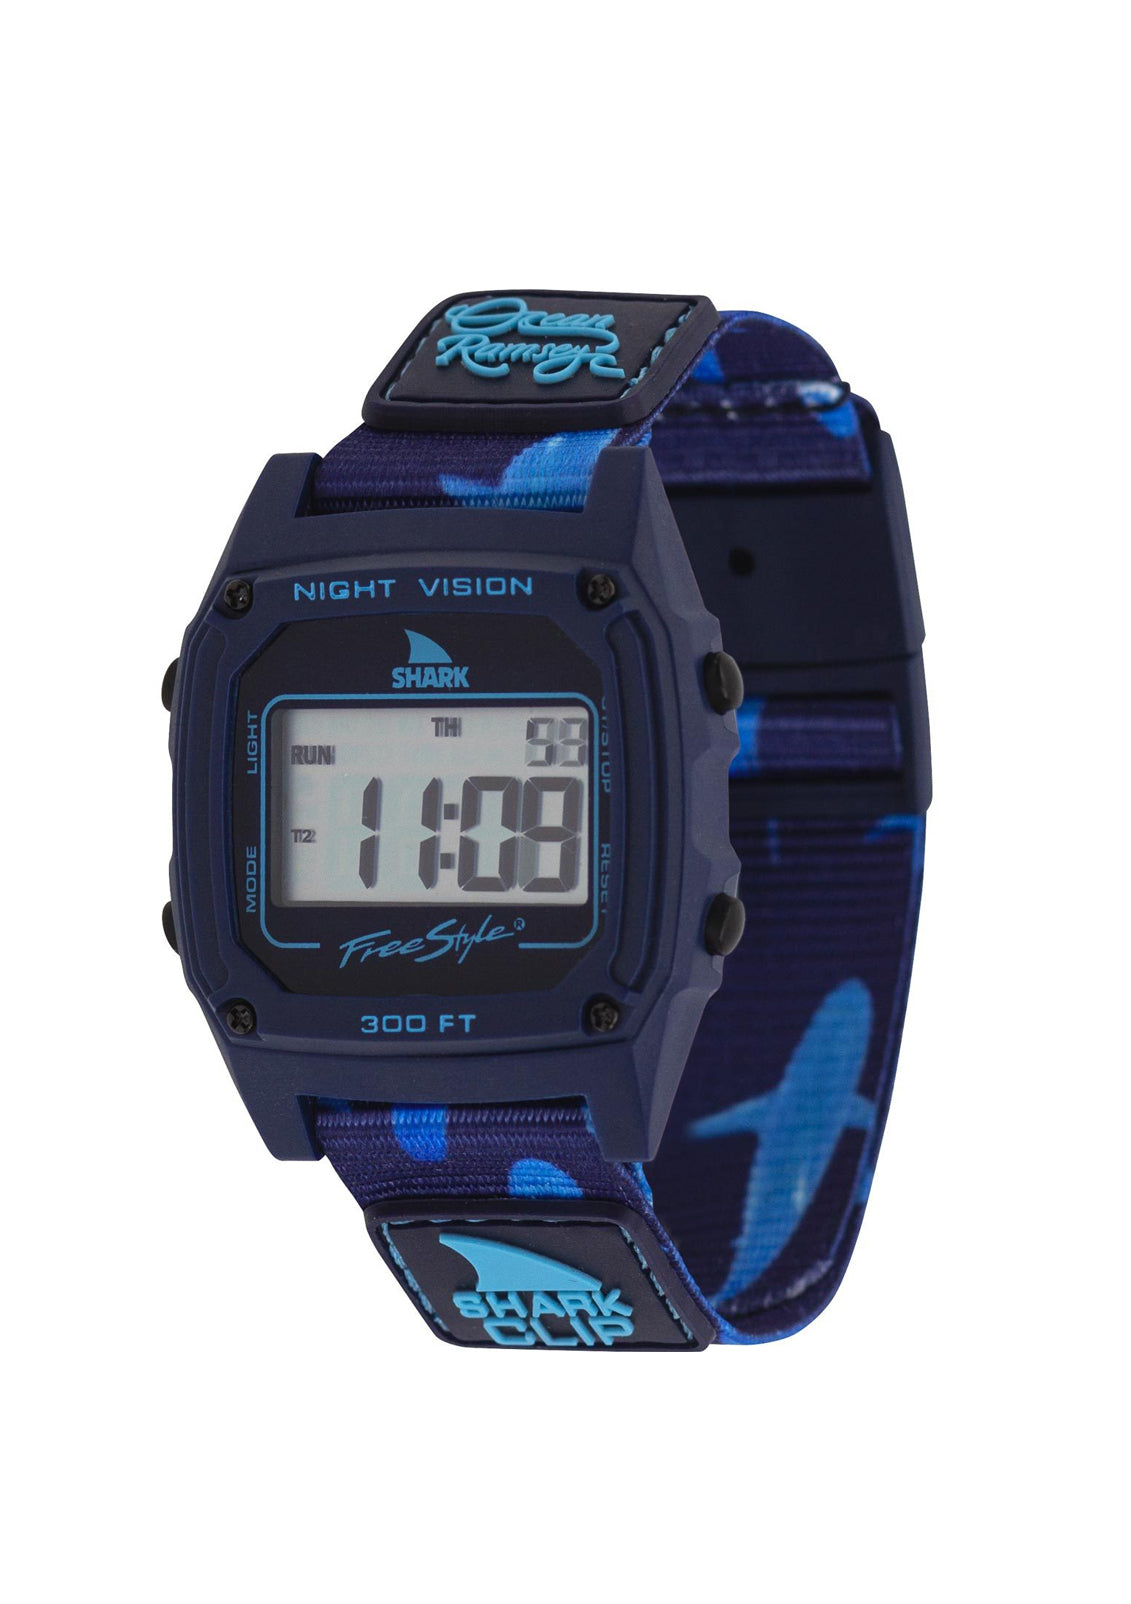 Ocean Ramsey Signature Shark Classic Clip Watch Deep Blue